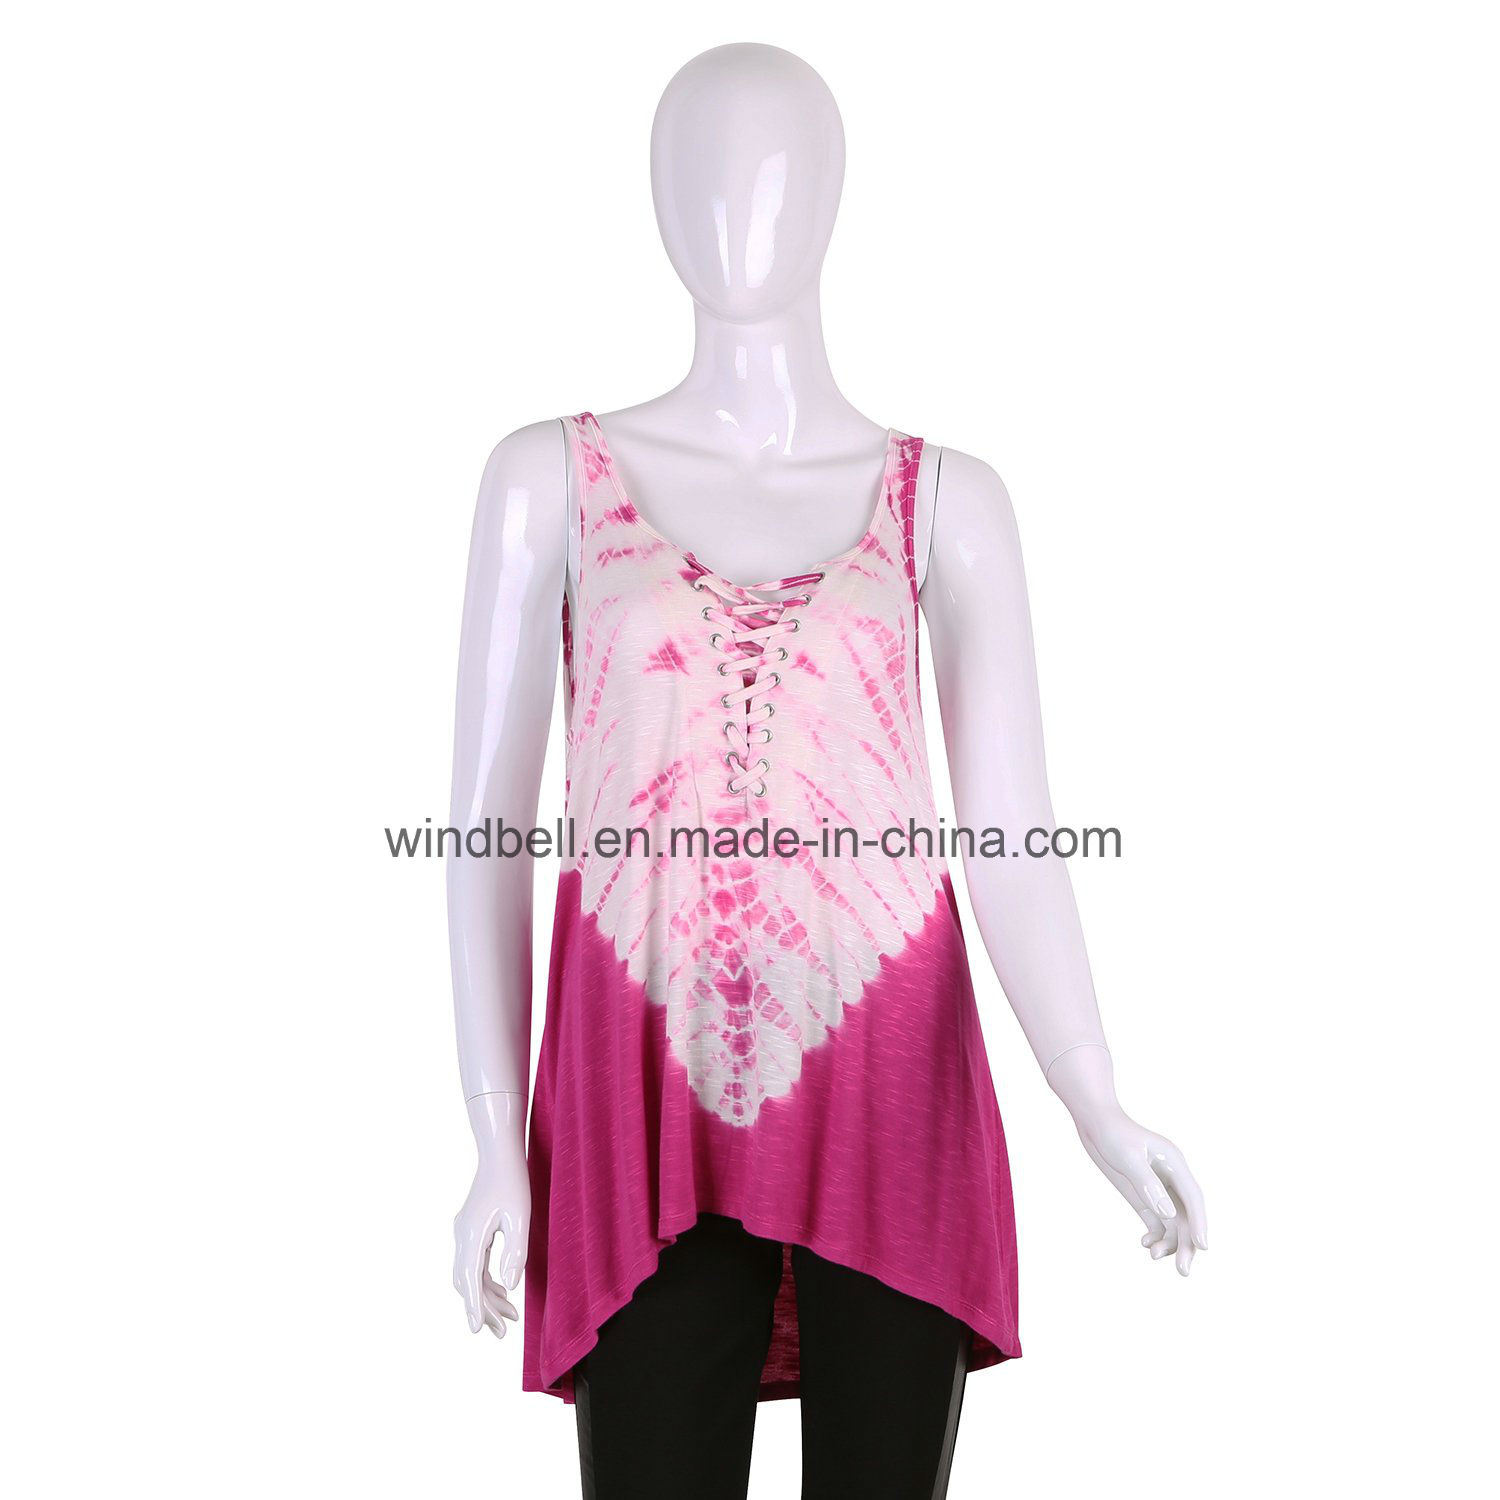 New Style Top for Women with Garment Tie Dye